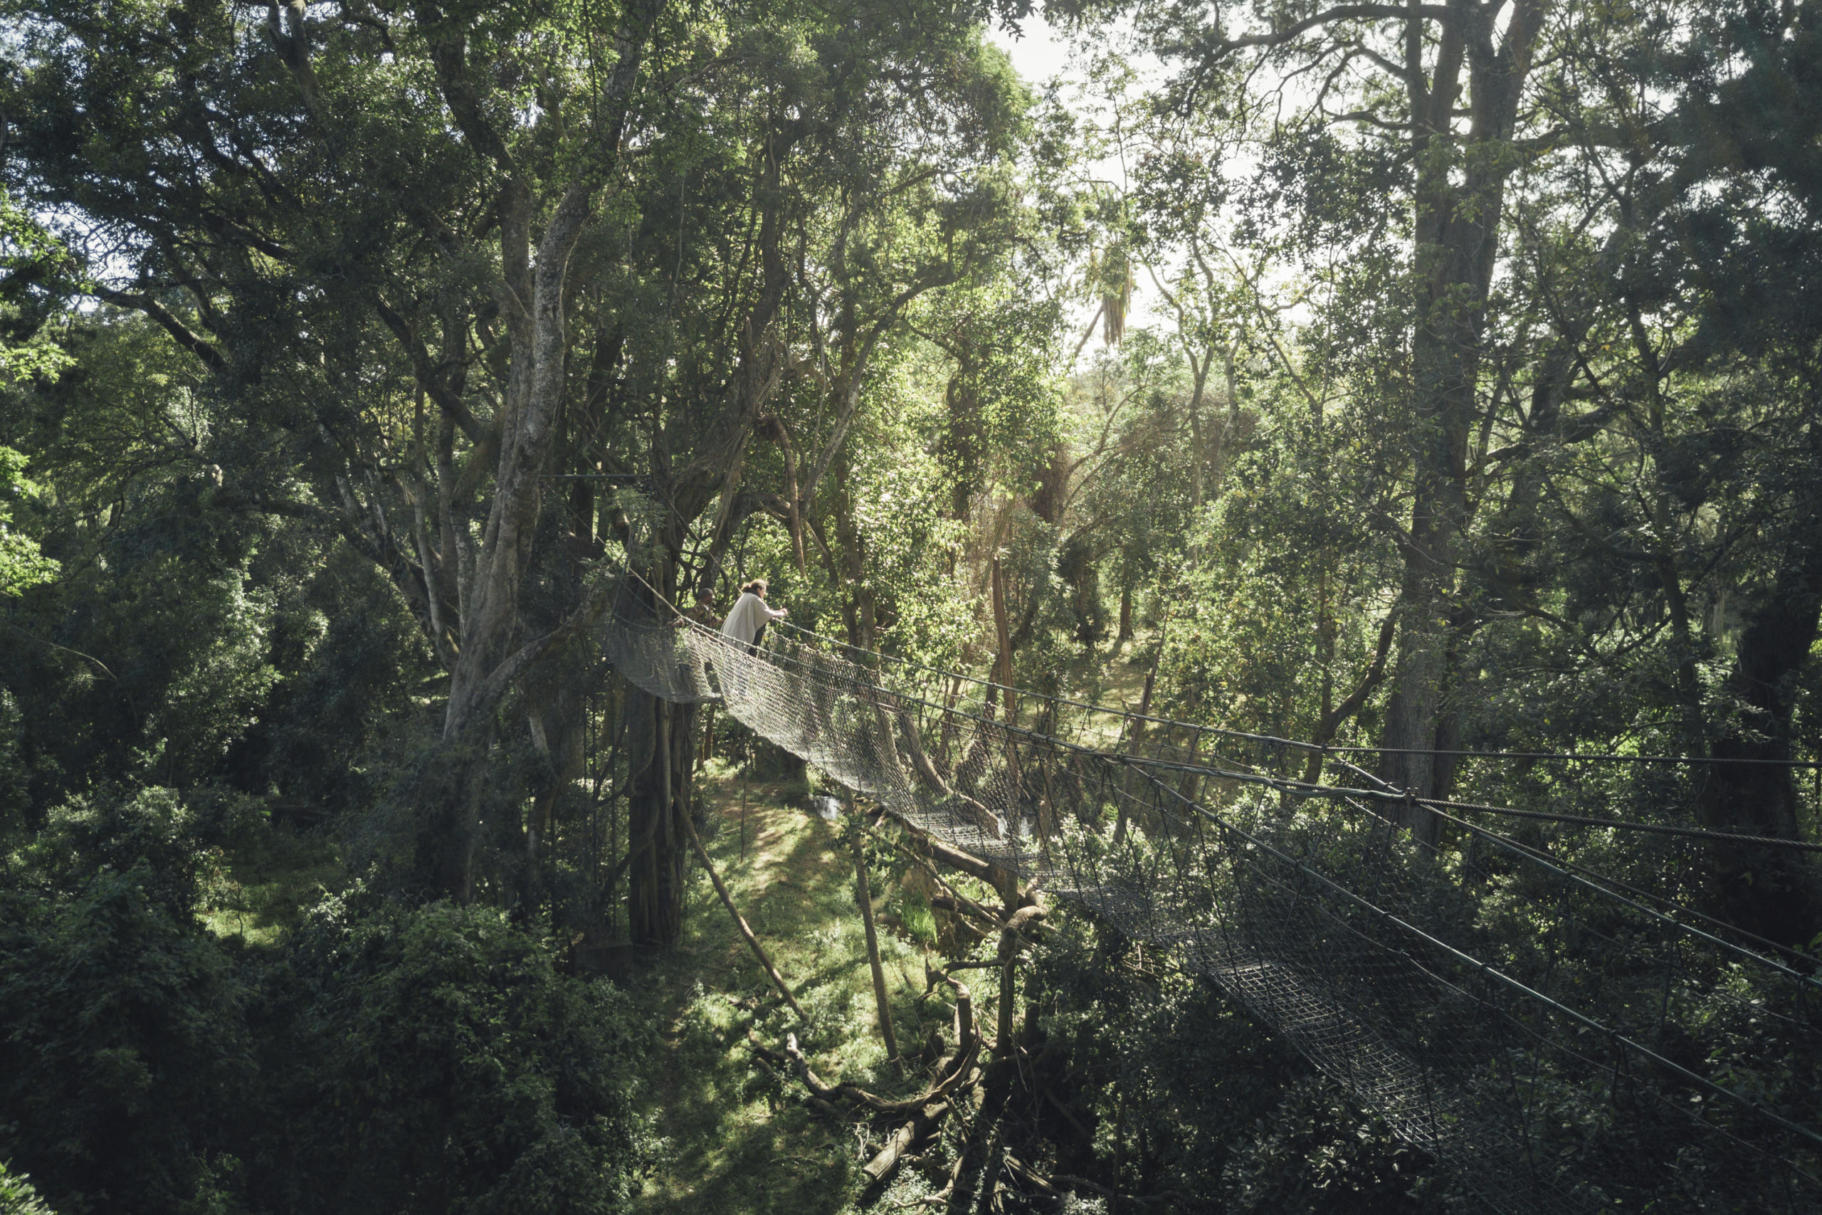 Canopy walkway at ngare Ndare Forest, Kenya